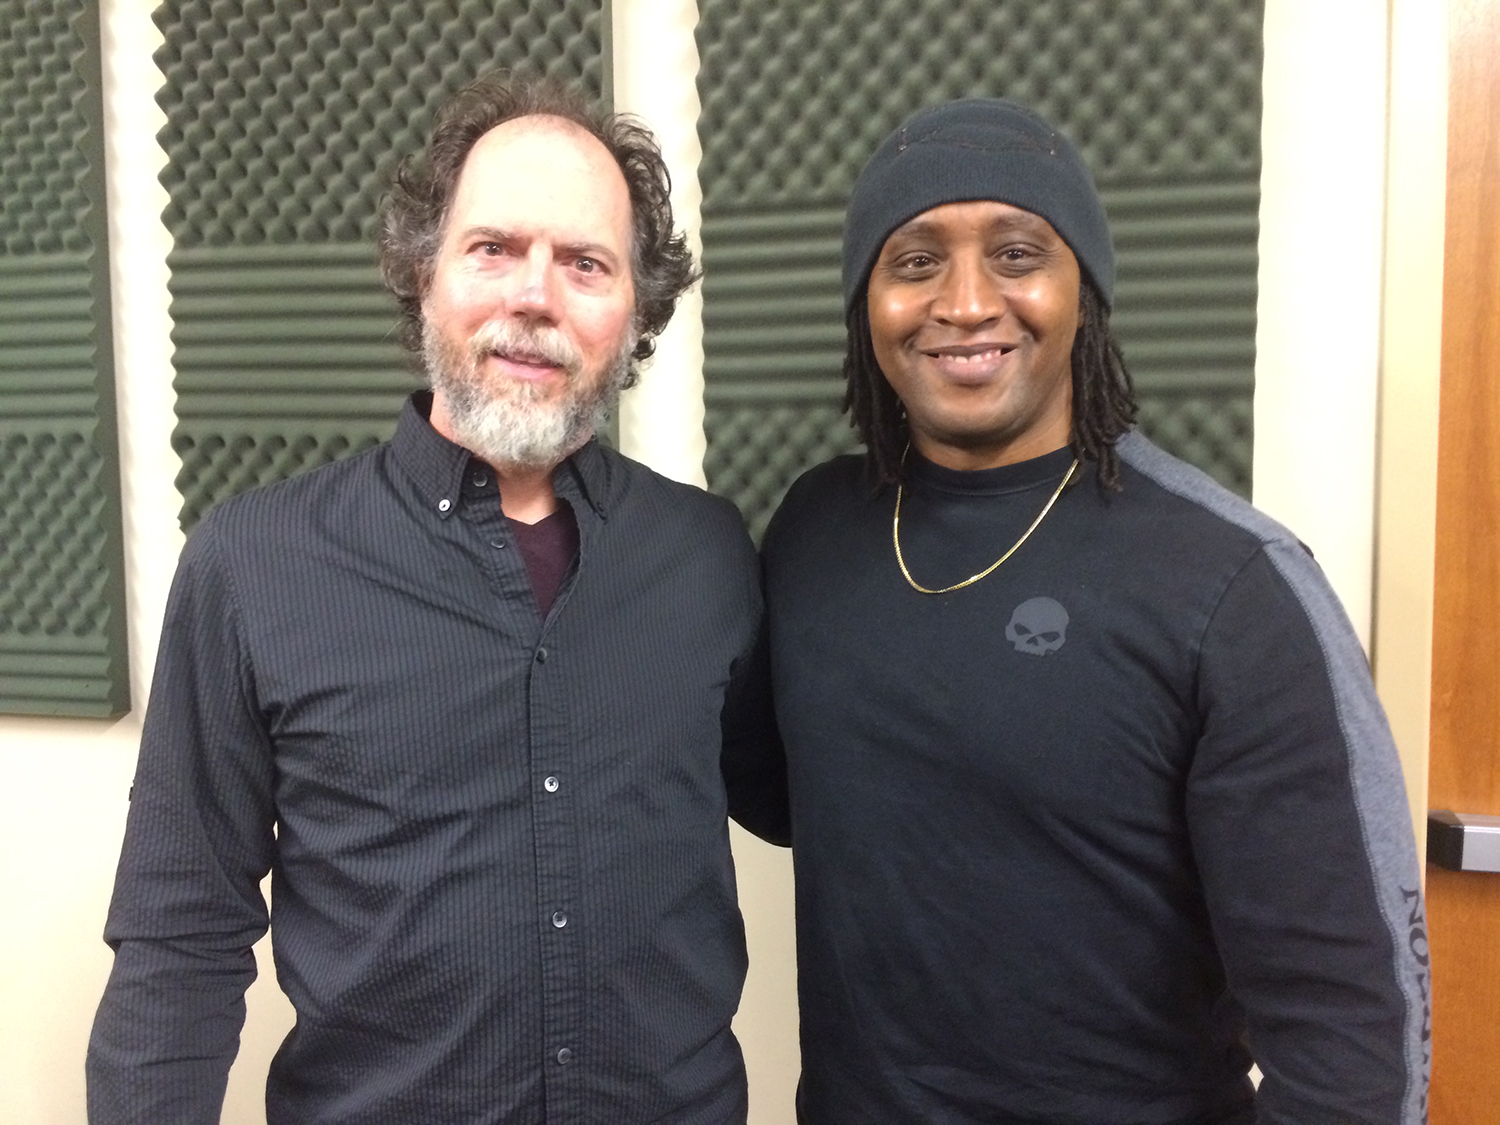 Leon Christian with Andrew York at Ted Brown Music for the International Guitar Night